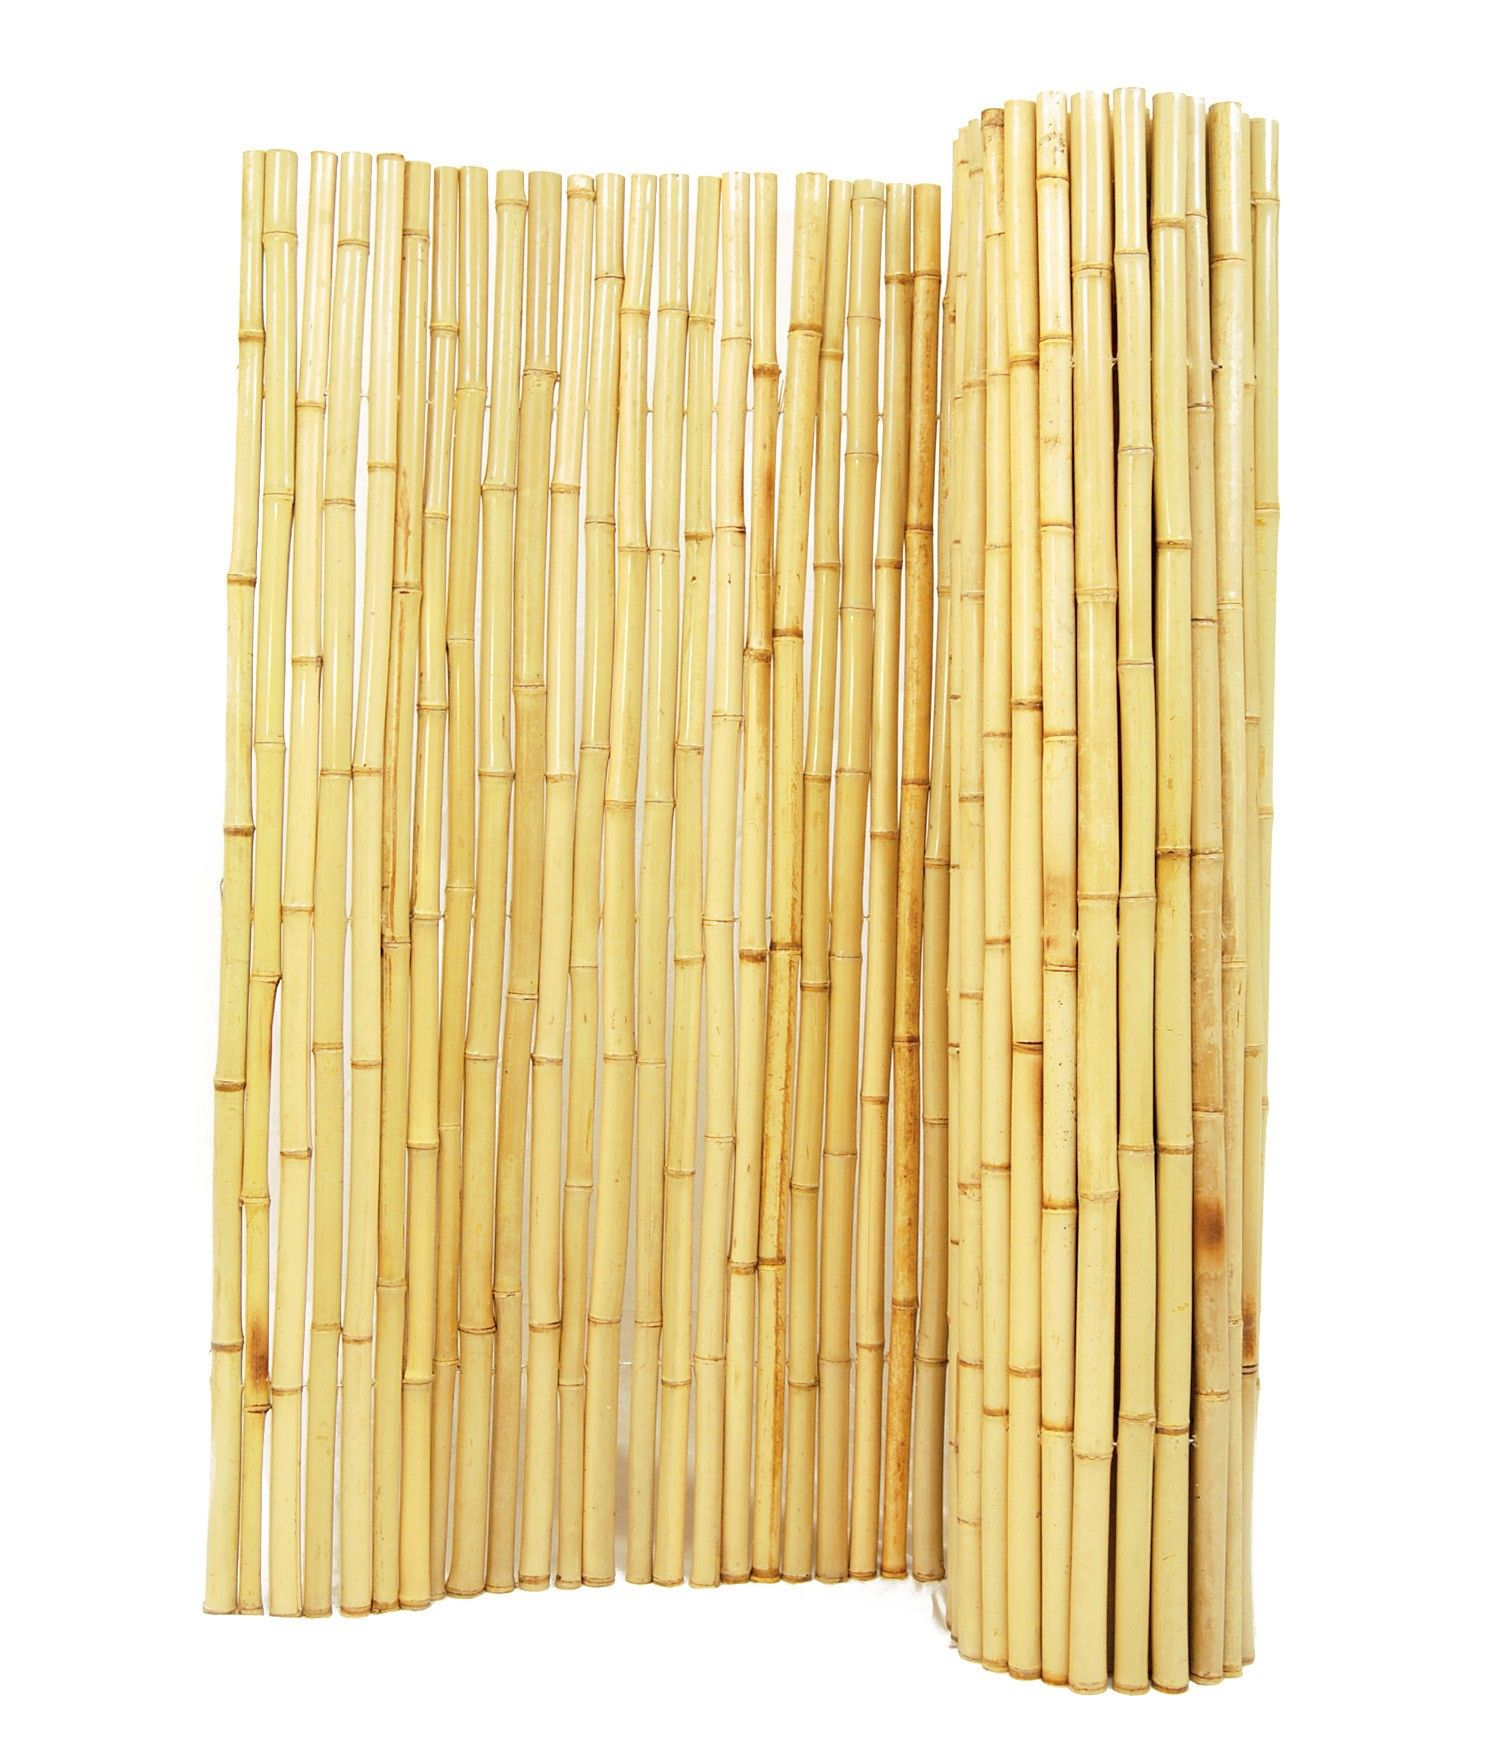 Natural Bamboo Fence 1 D X 8 H X 8 L Bamboo Fence Bamboo